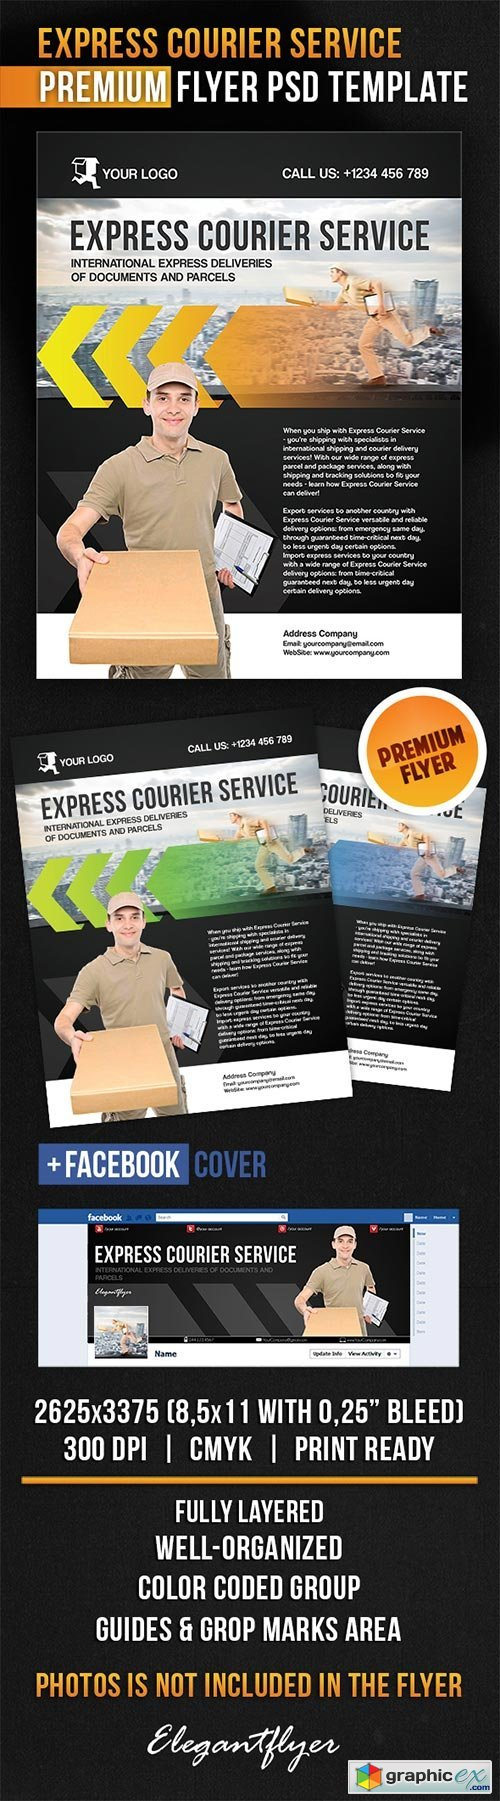 Express Courier Service Flyer PSD Template + Facebook Cover